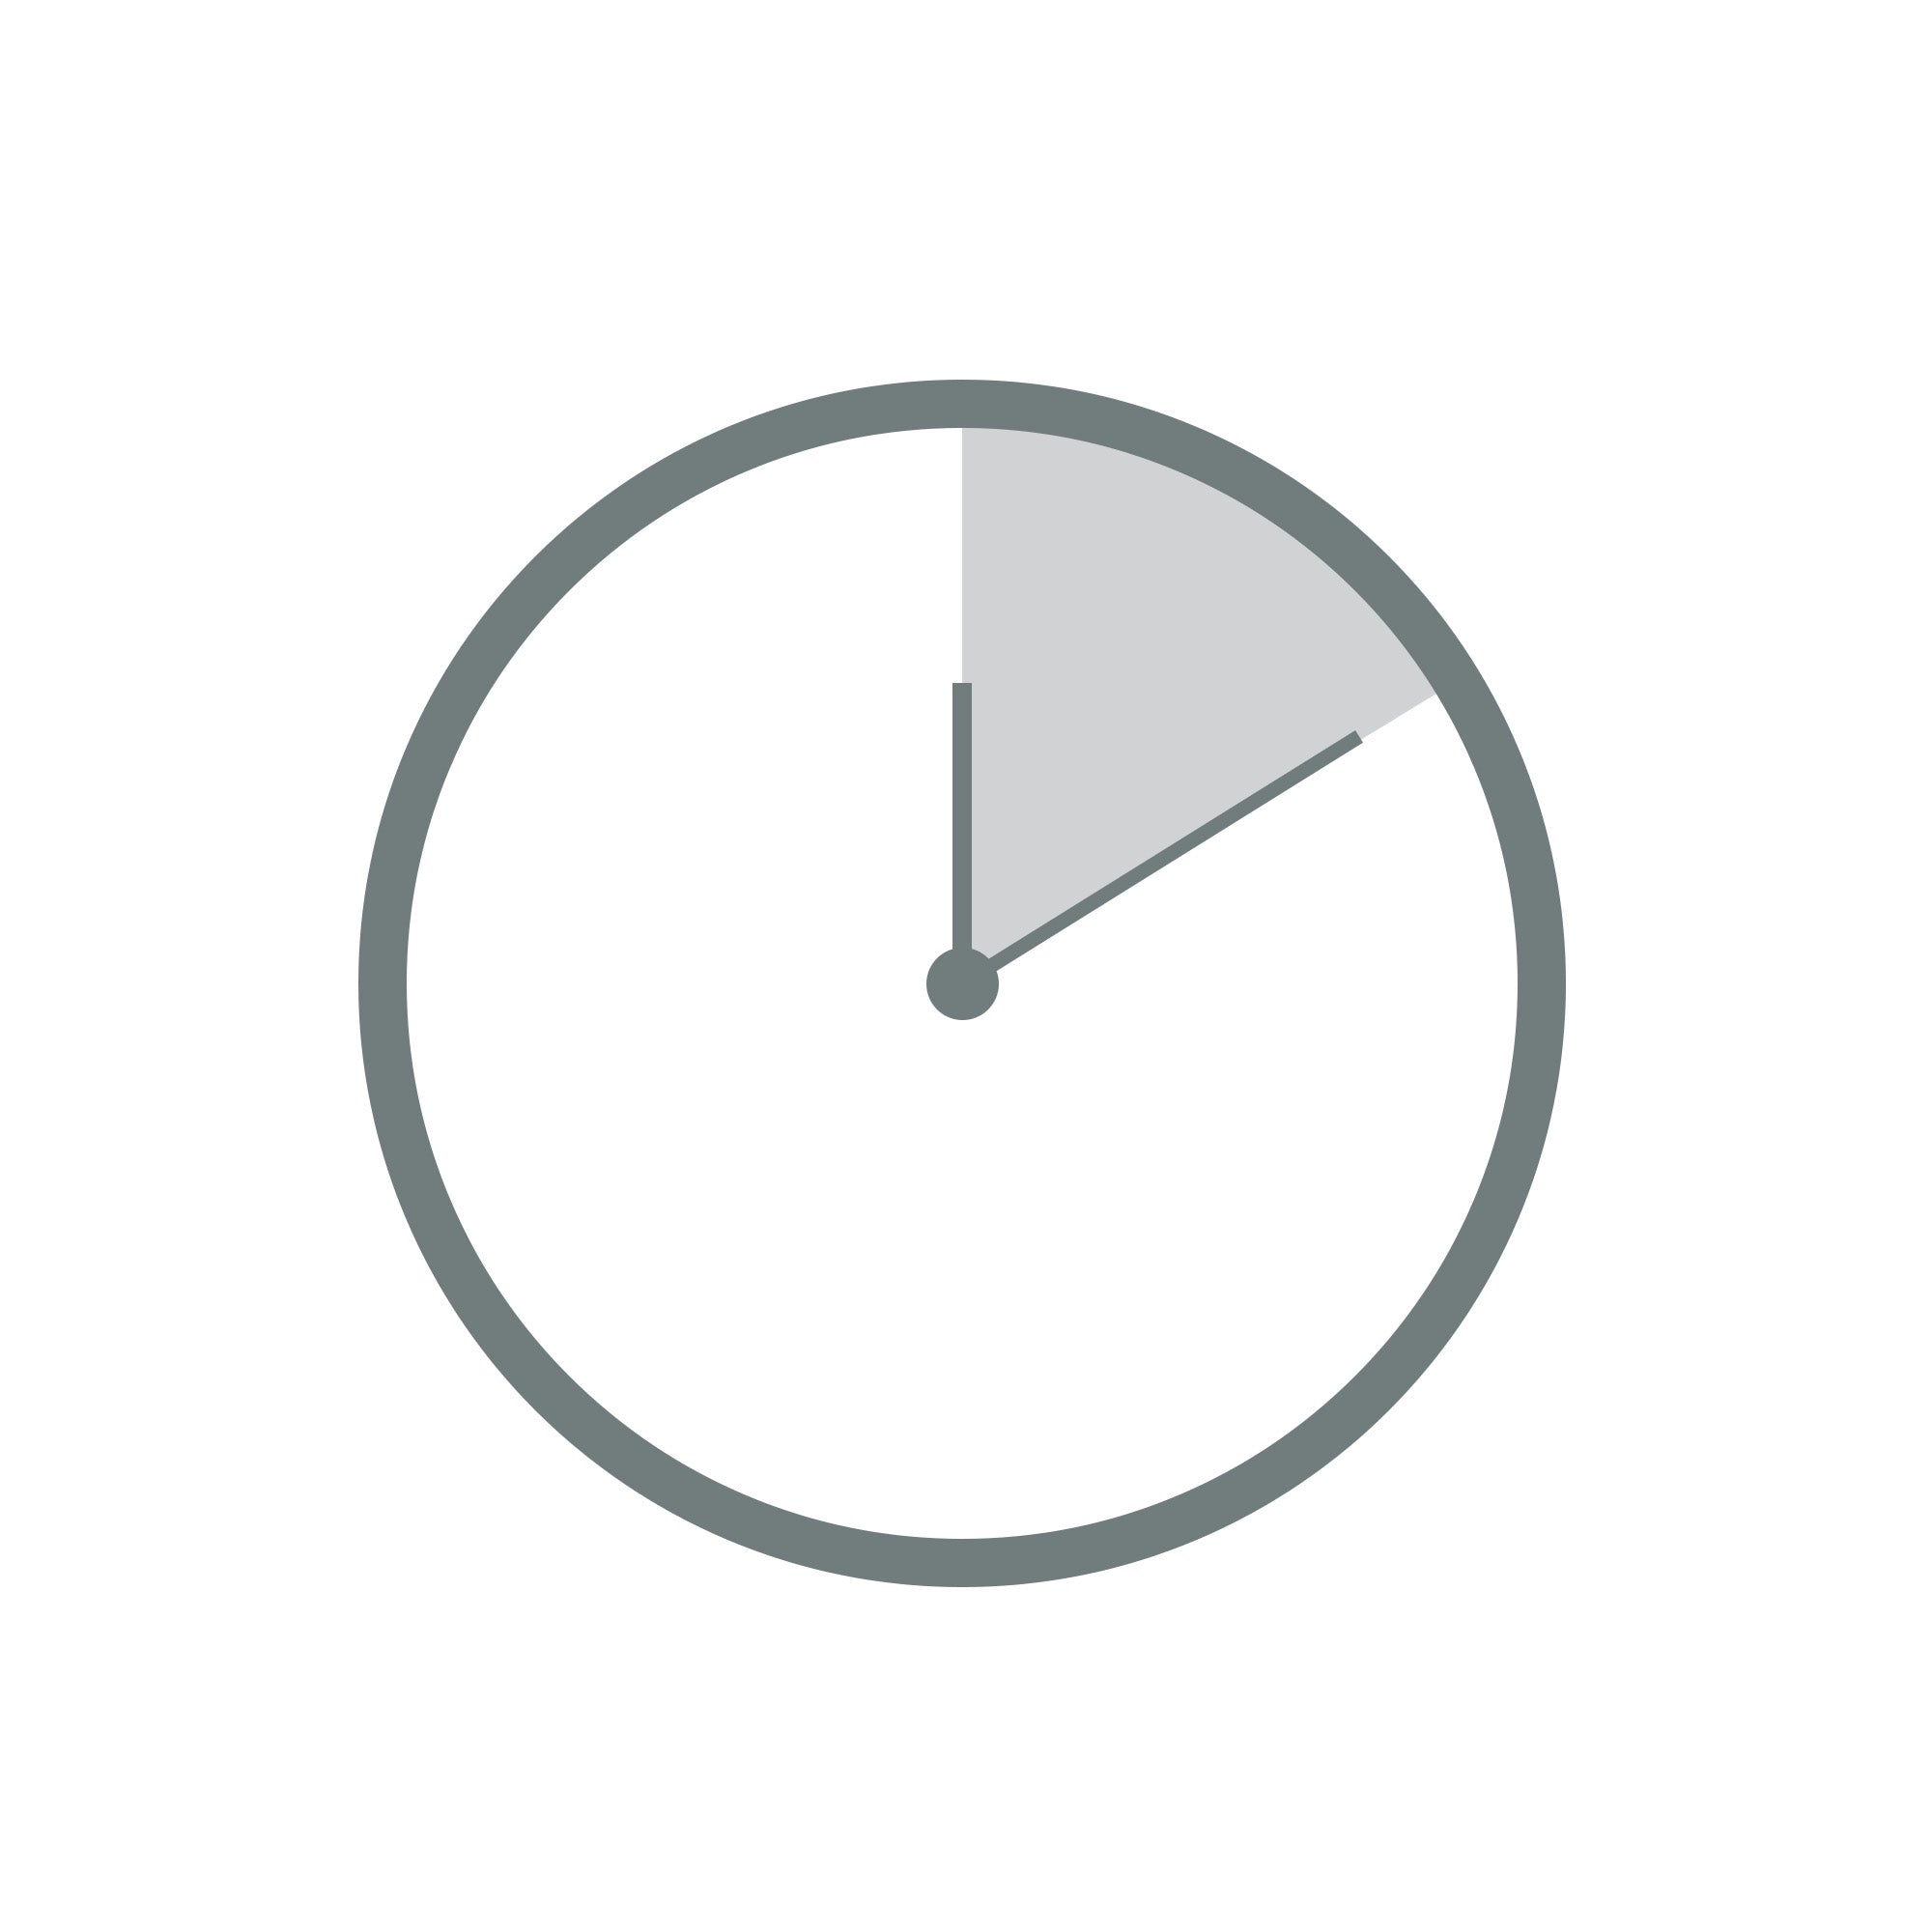 A clock graphic showing 10 minutes past.